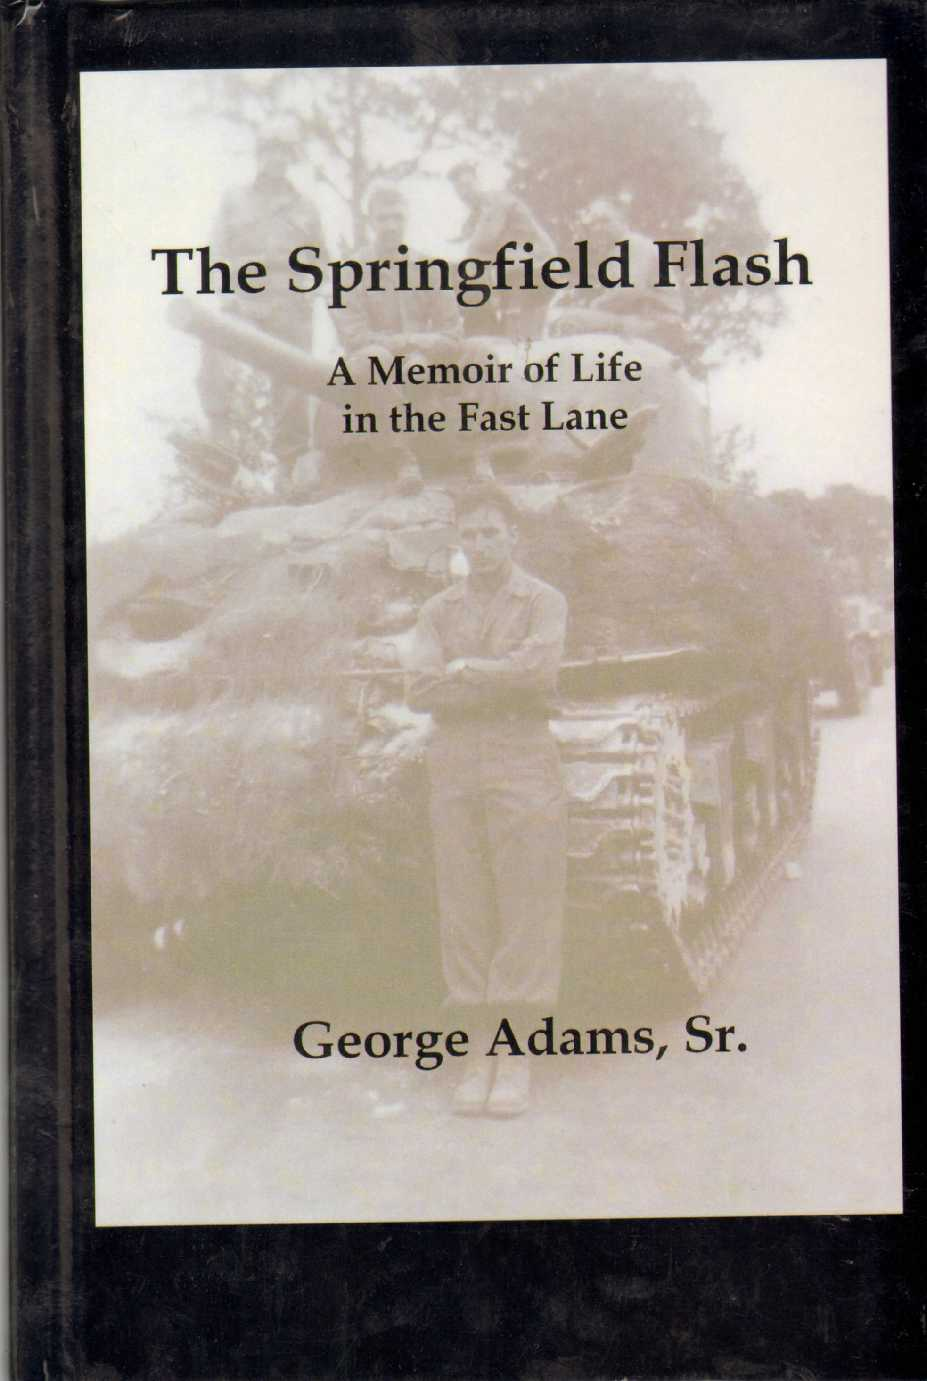 Image for THE SPRINGFIELD FLASH A Memoir of Life in the Fast Lane